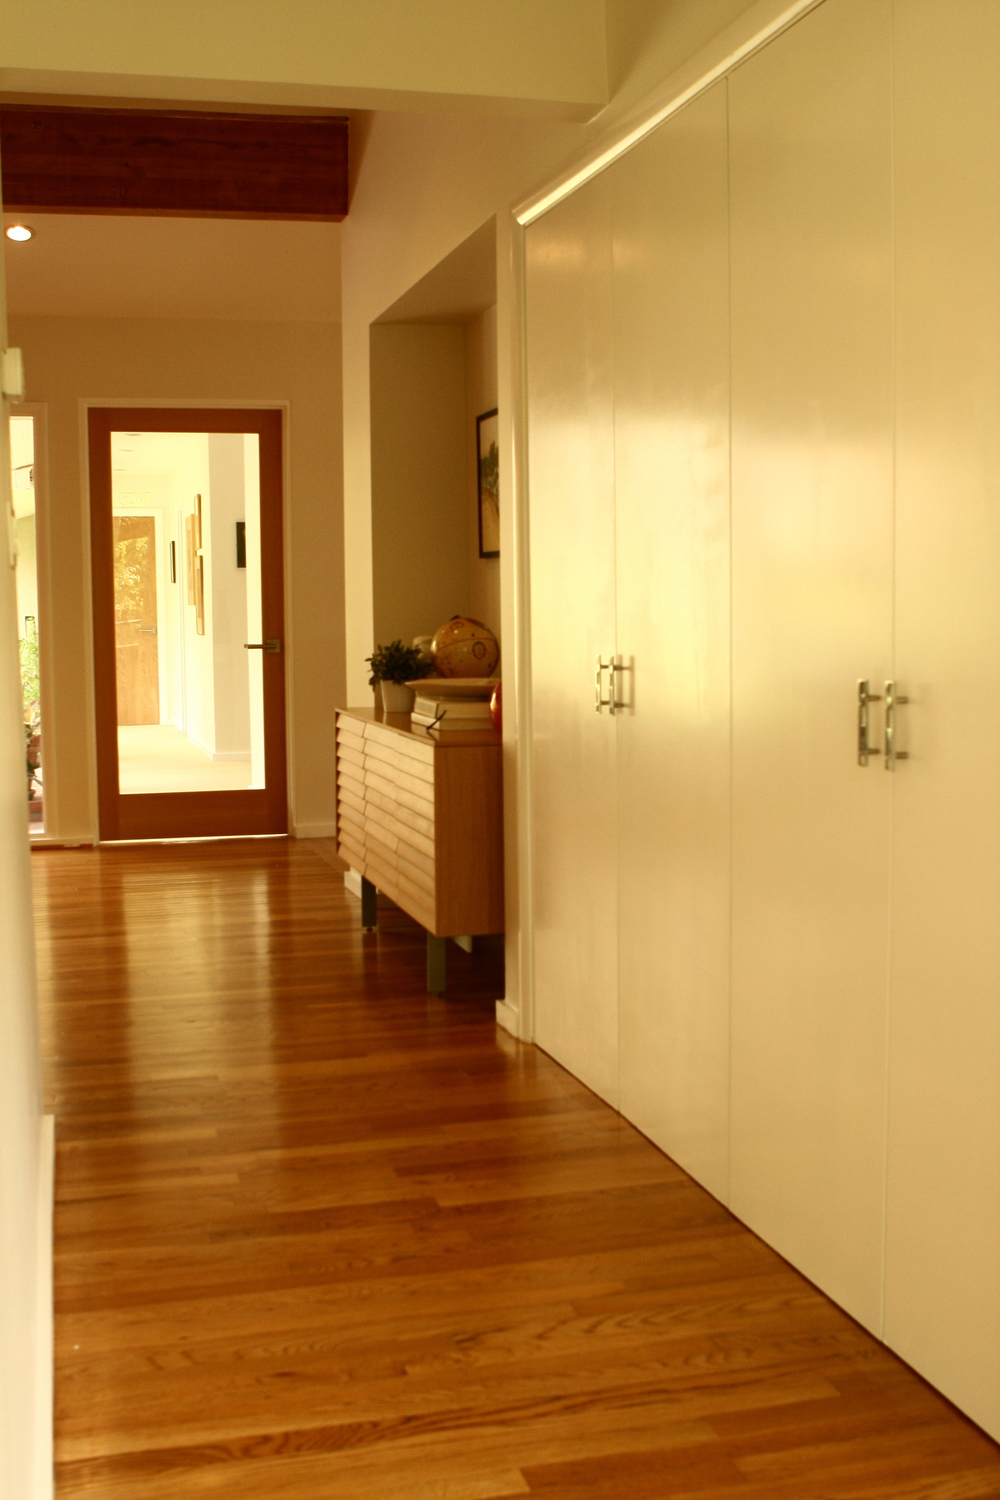 The addition of the glass door lets all the natural light flood in, while keeping the kids' hallway quiet when needed.